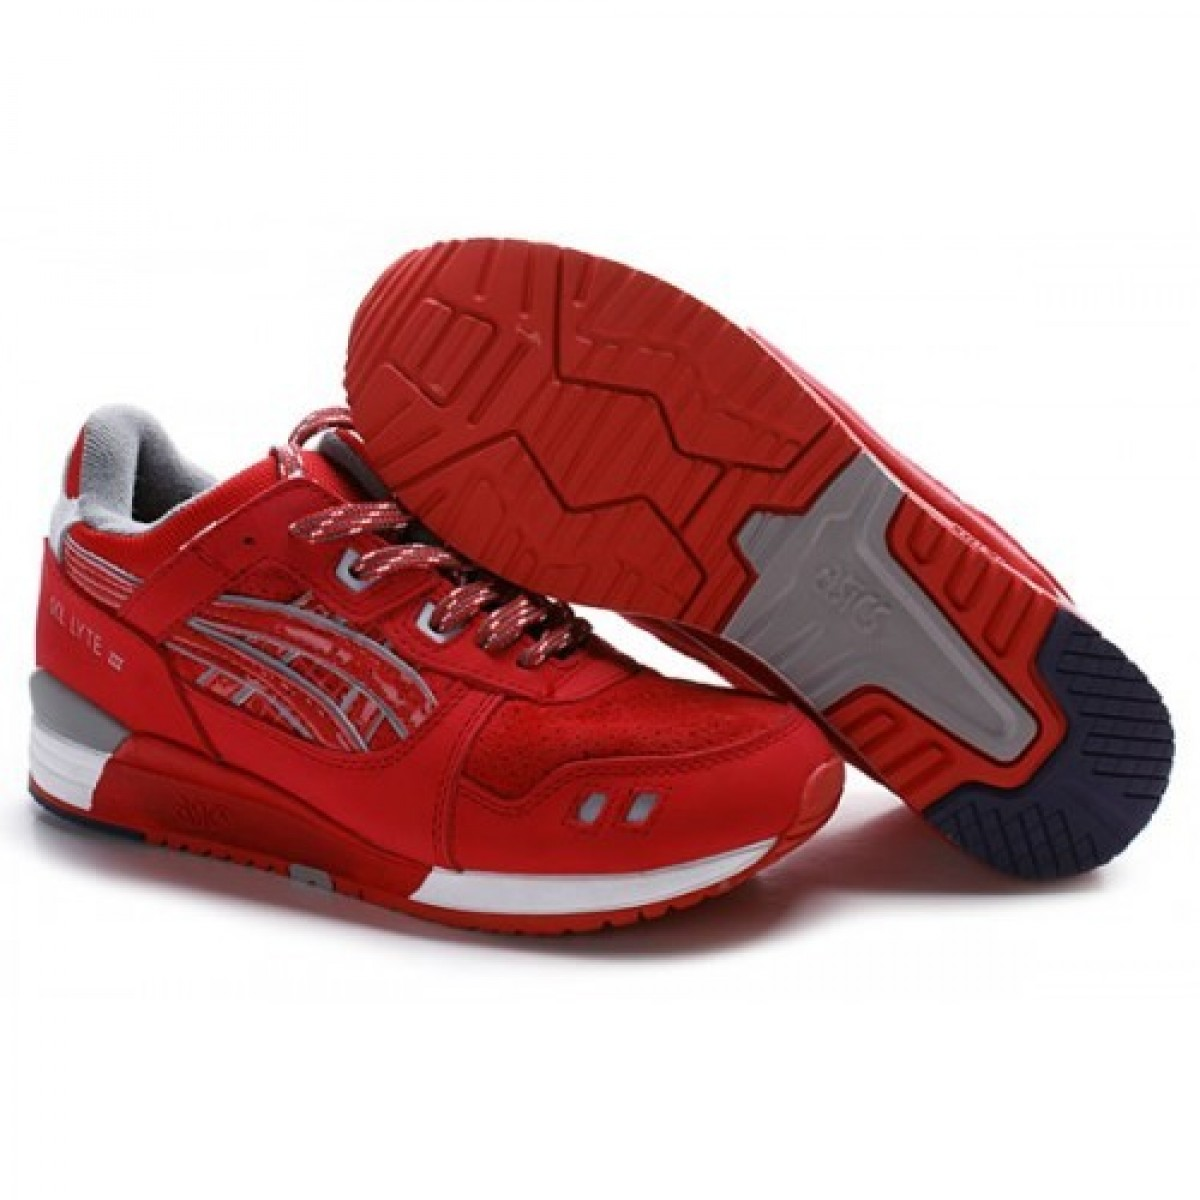 ZV4153 Chaussures Soldes Asics Gel Lyte III Rouge Gris Blanc 22896008 Pas Cher